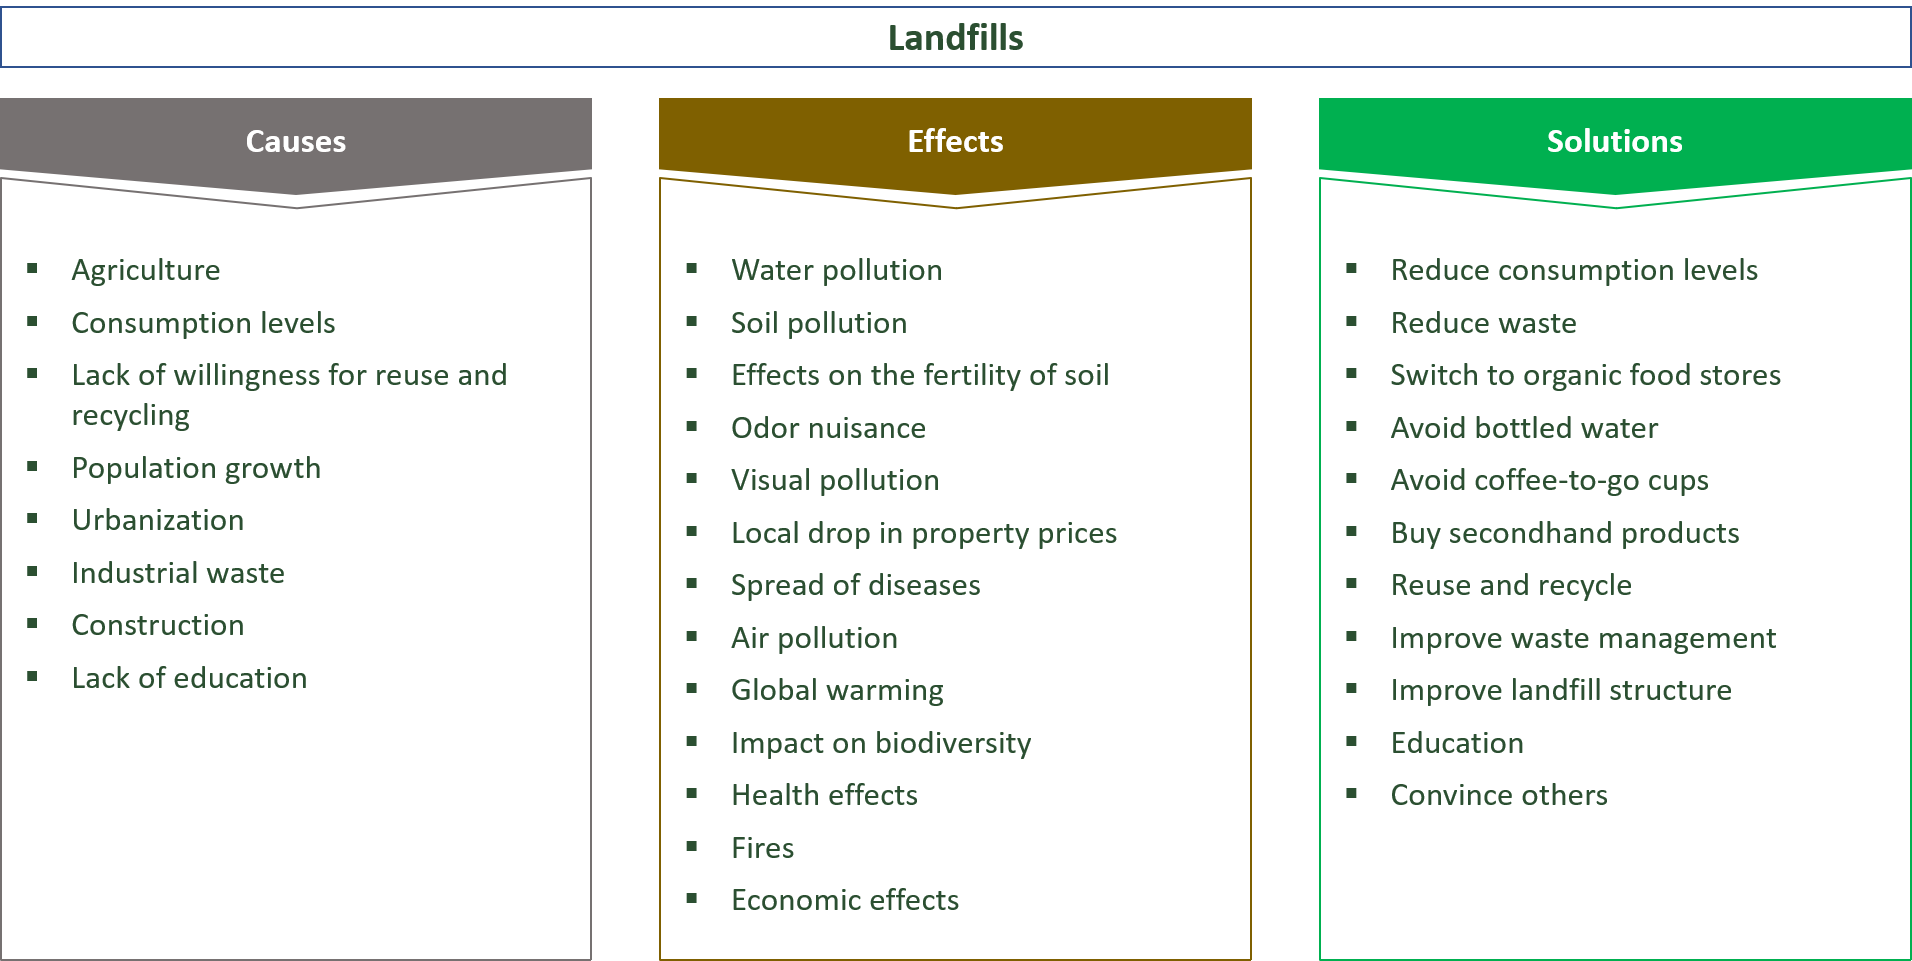 causes, effects and solutions for landfills